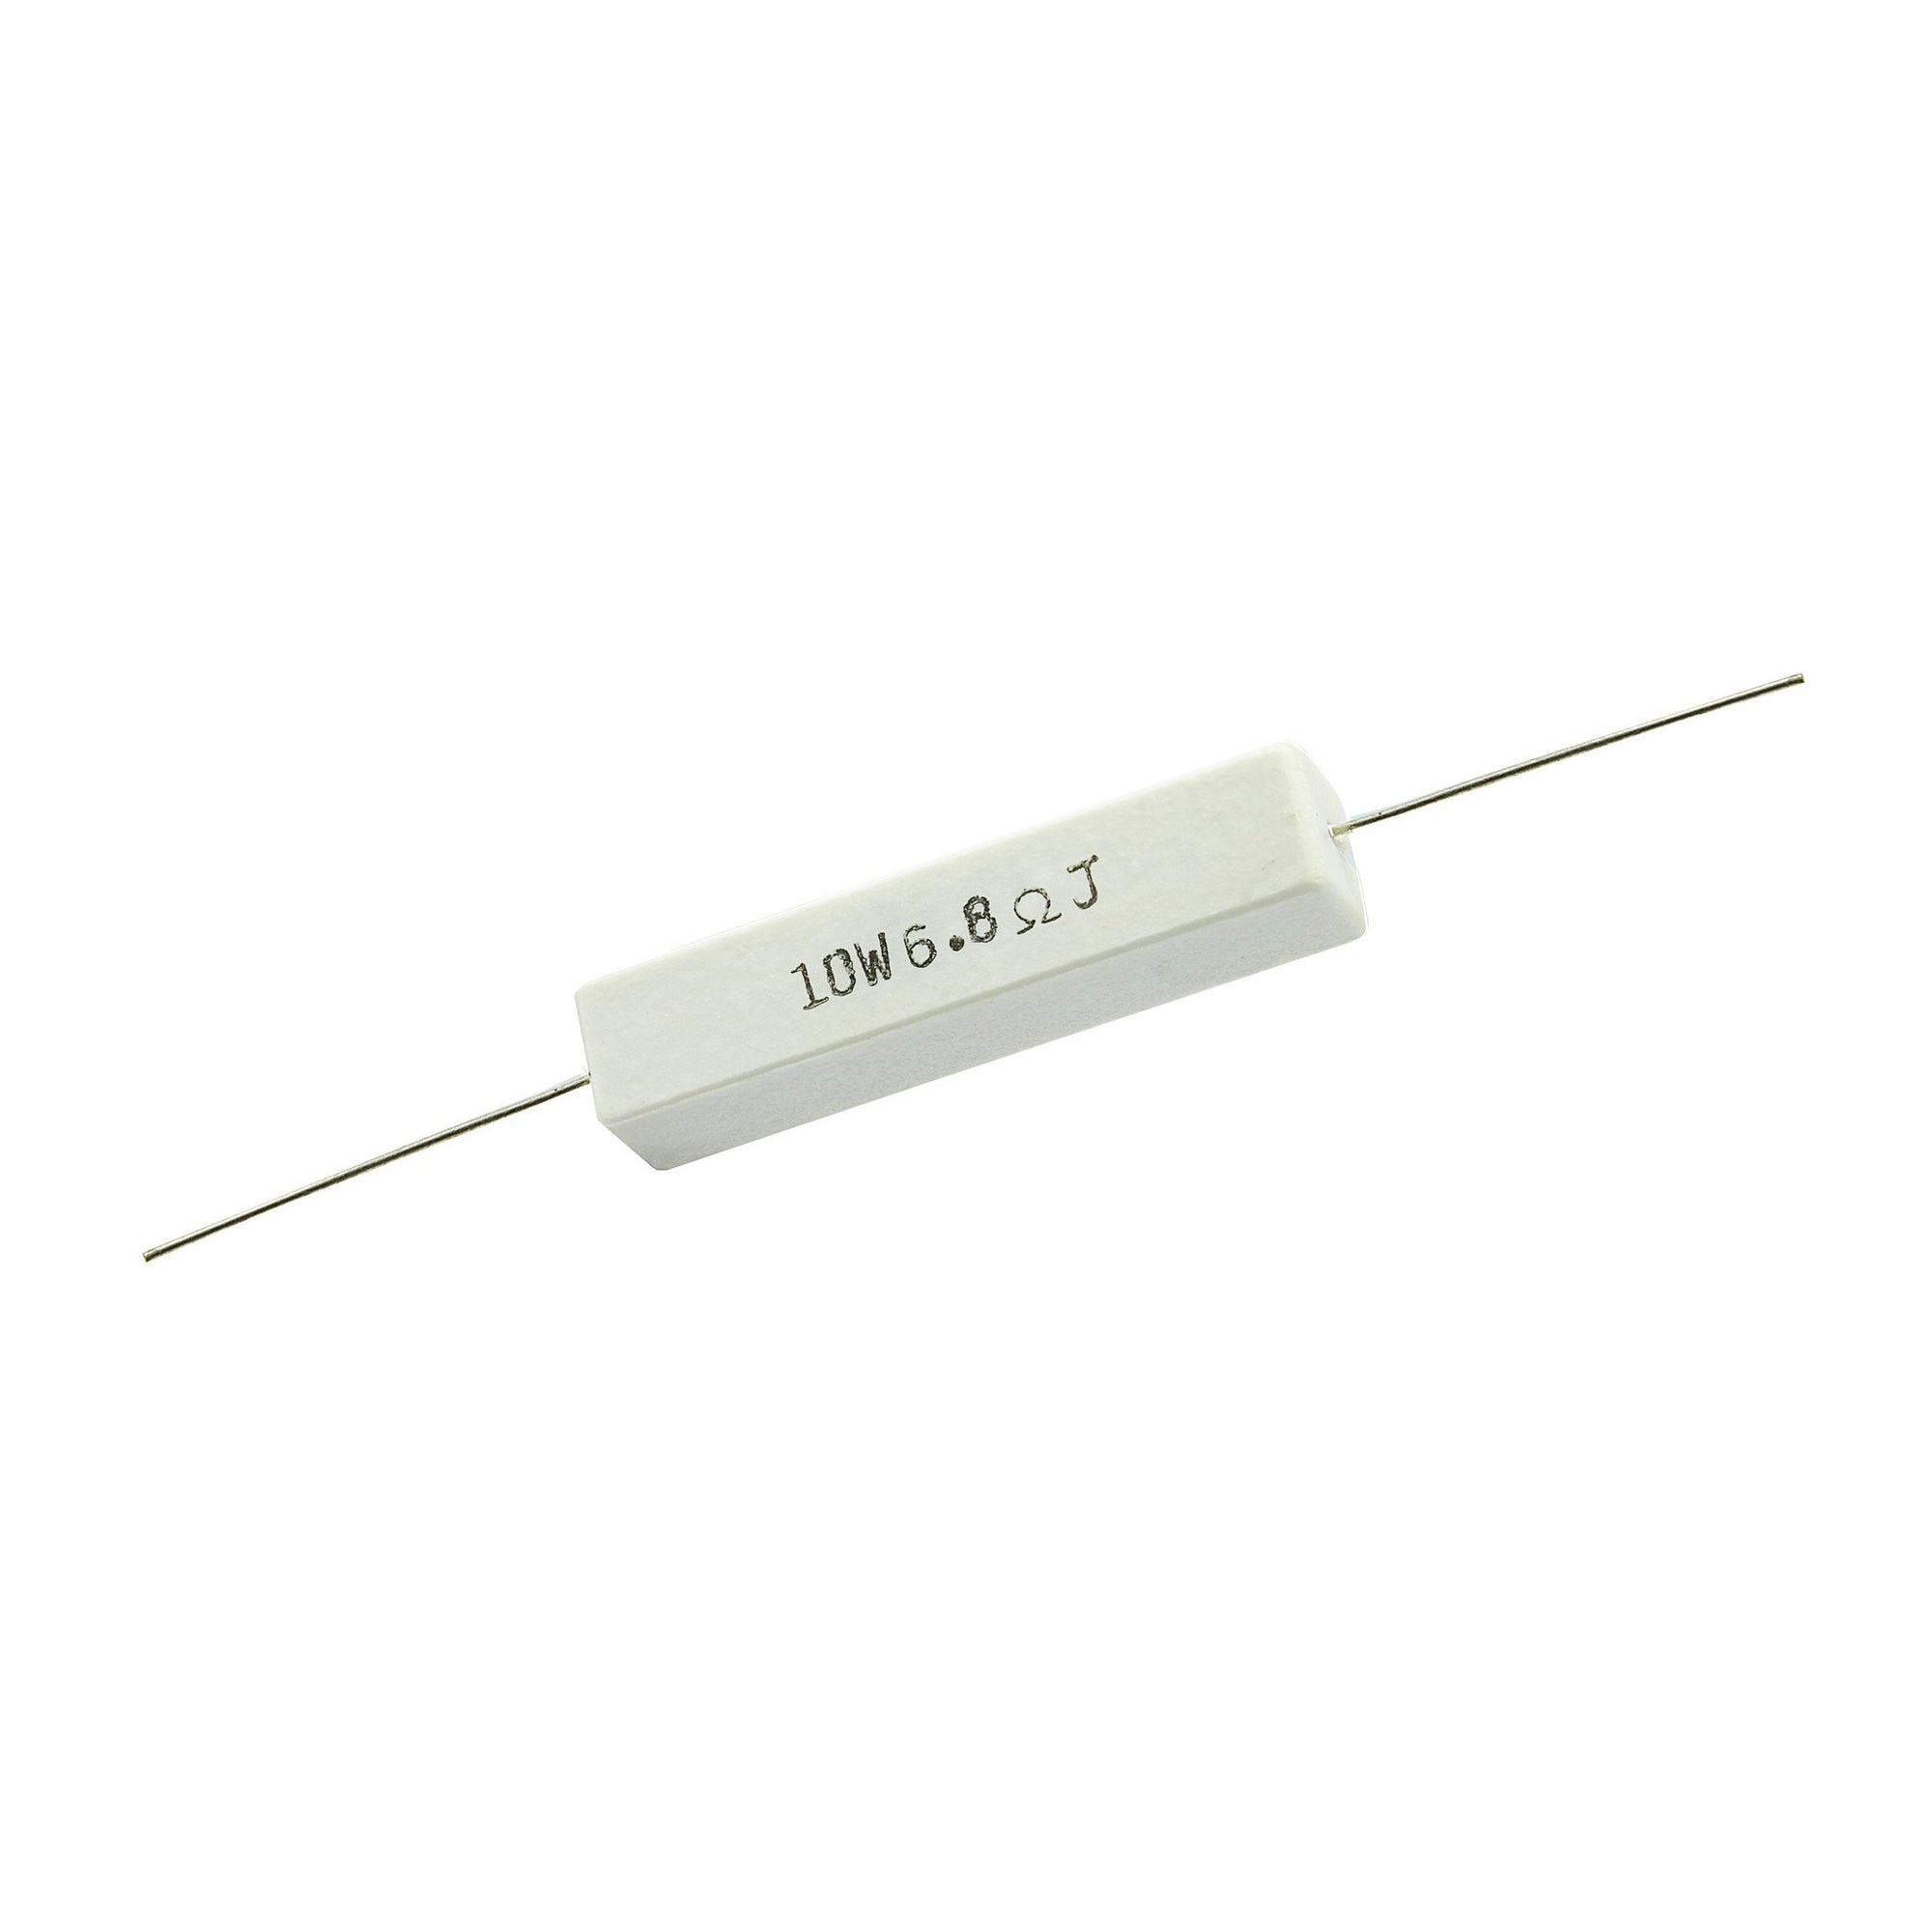 6.8 Ohm 10 Watt 5% Ceramic Wirewound Resistor - Willys-Hifi Ltd